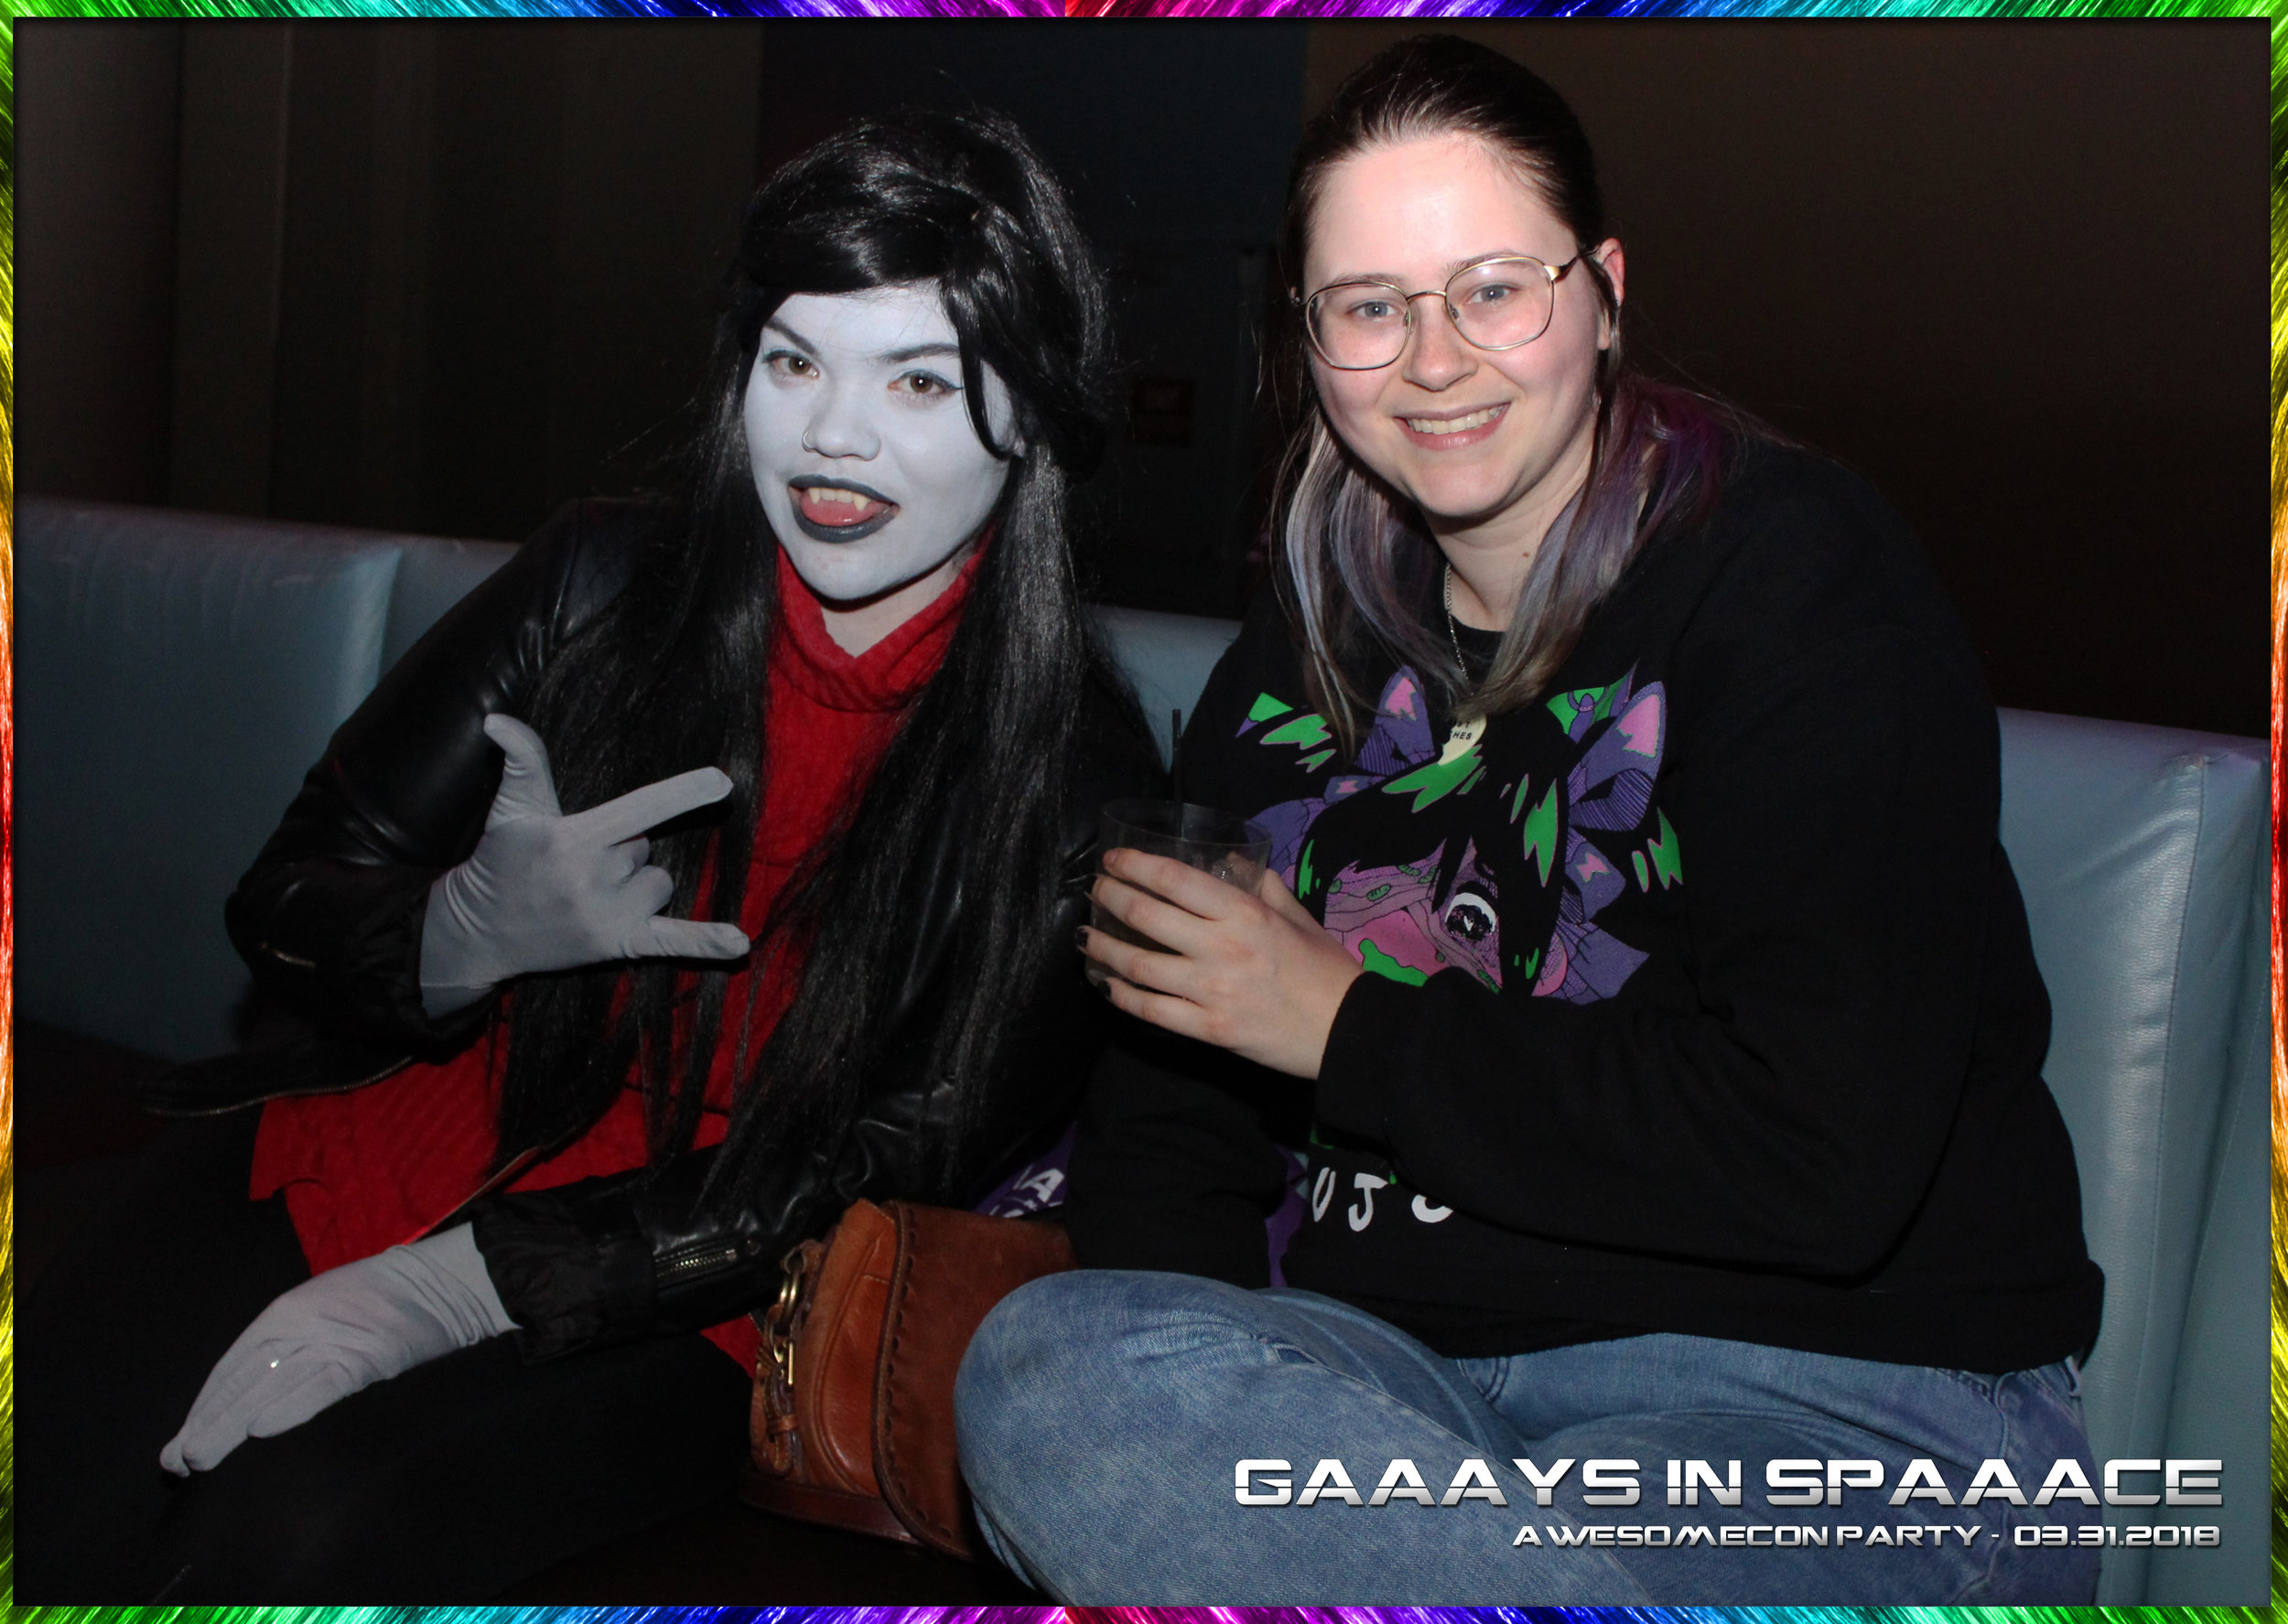 11-GIS-AwesomeConParty-3-31-18-Fans-1.jpg